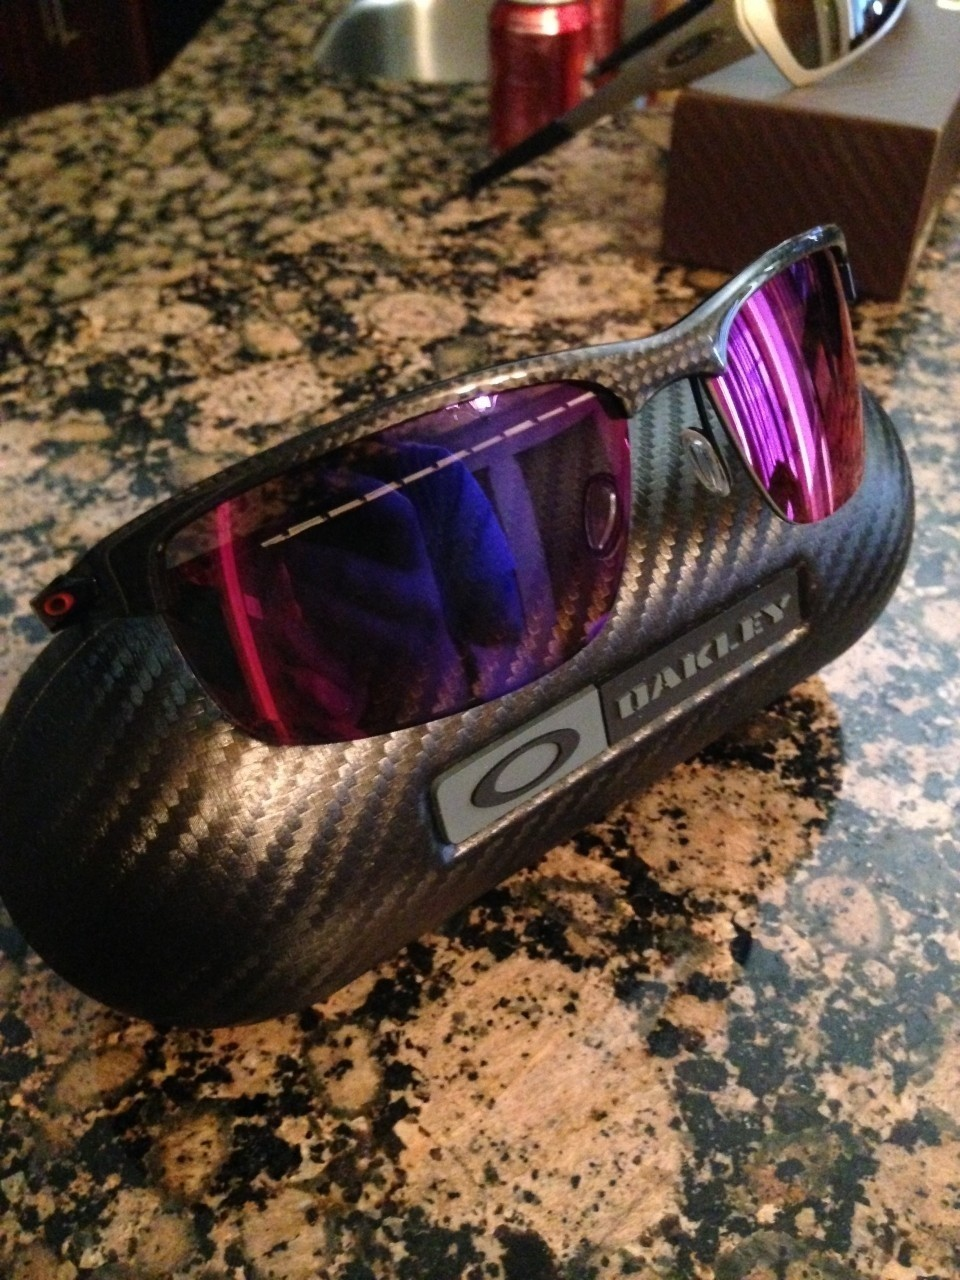 Oakley Carbon Blade - OO red iridium polarized lens & case